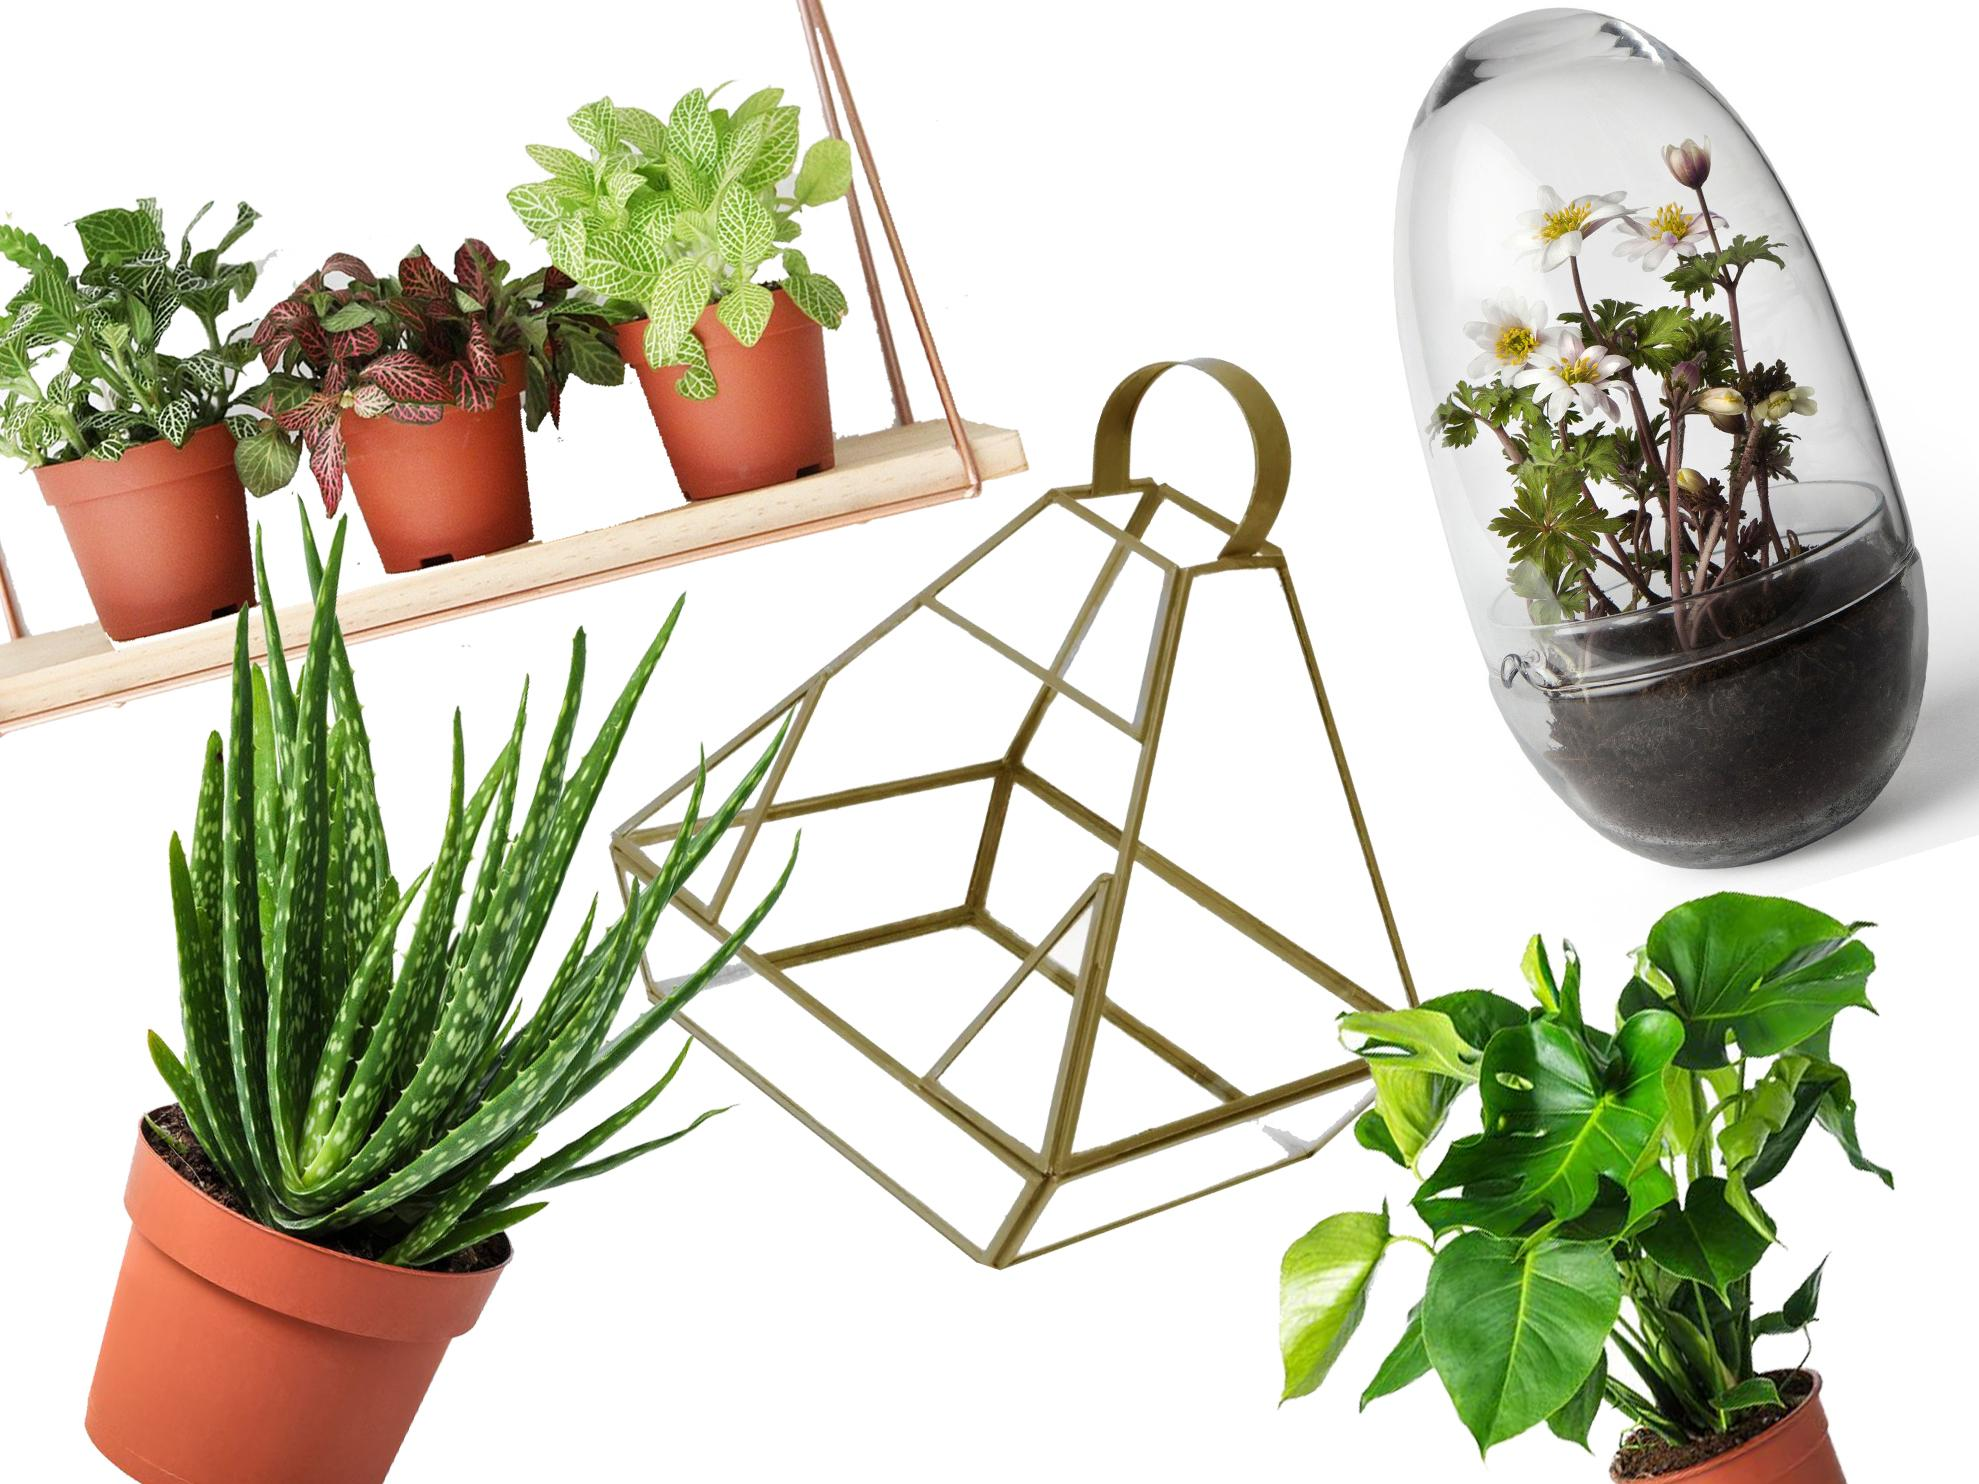 8 best house plants, hanging planters and terrariums | The ... Ice Front House Plants on sword house plant, avocado house plant, marijuana house plant, steel house plant, banana house plant, jade house plant, leaf house plant, lazarus house plant, ant house plant, lemon house plant, dolphin house plant,